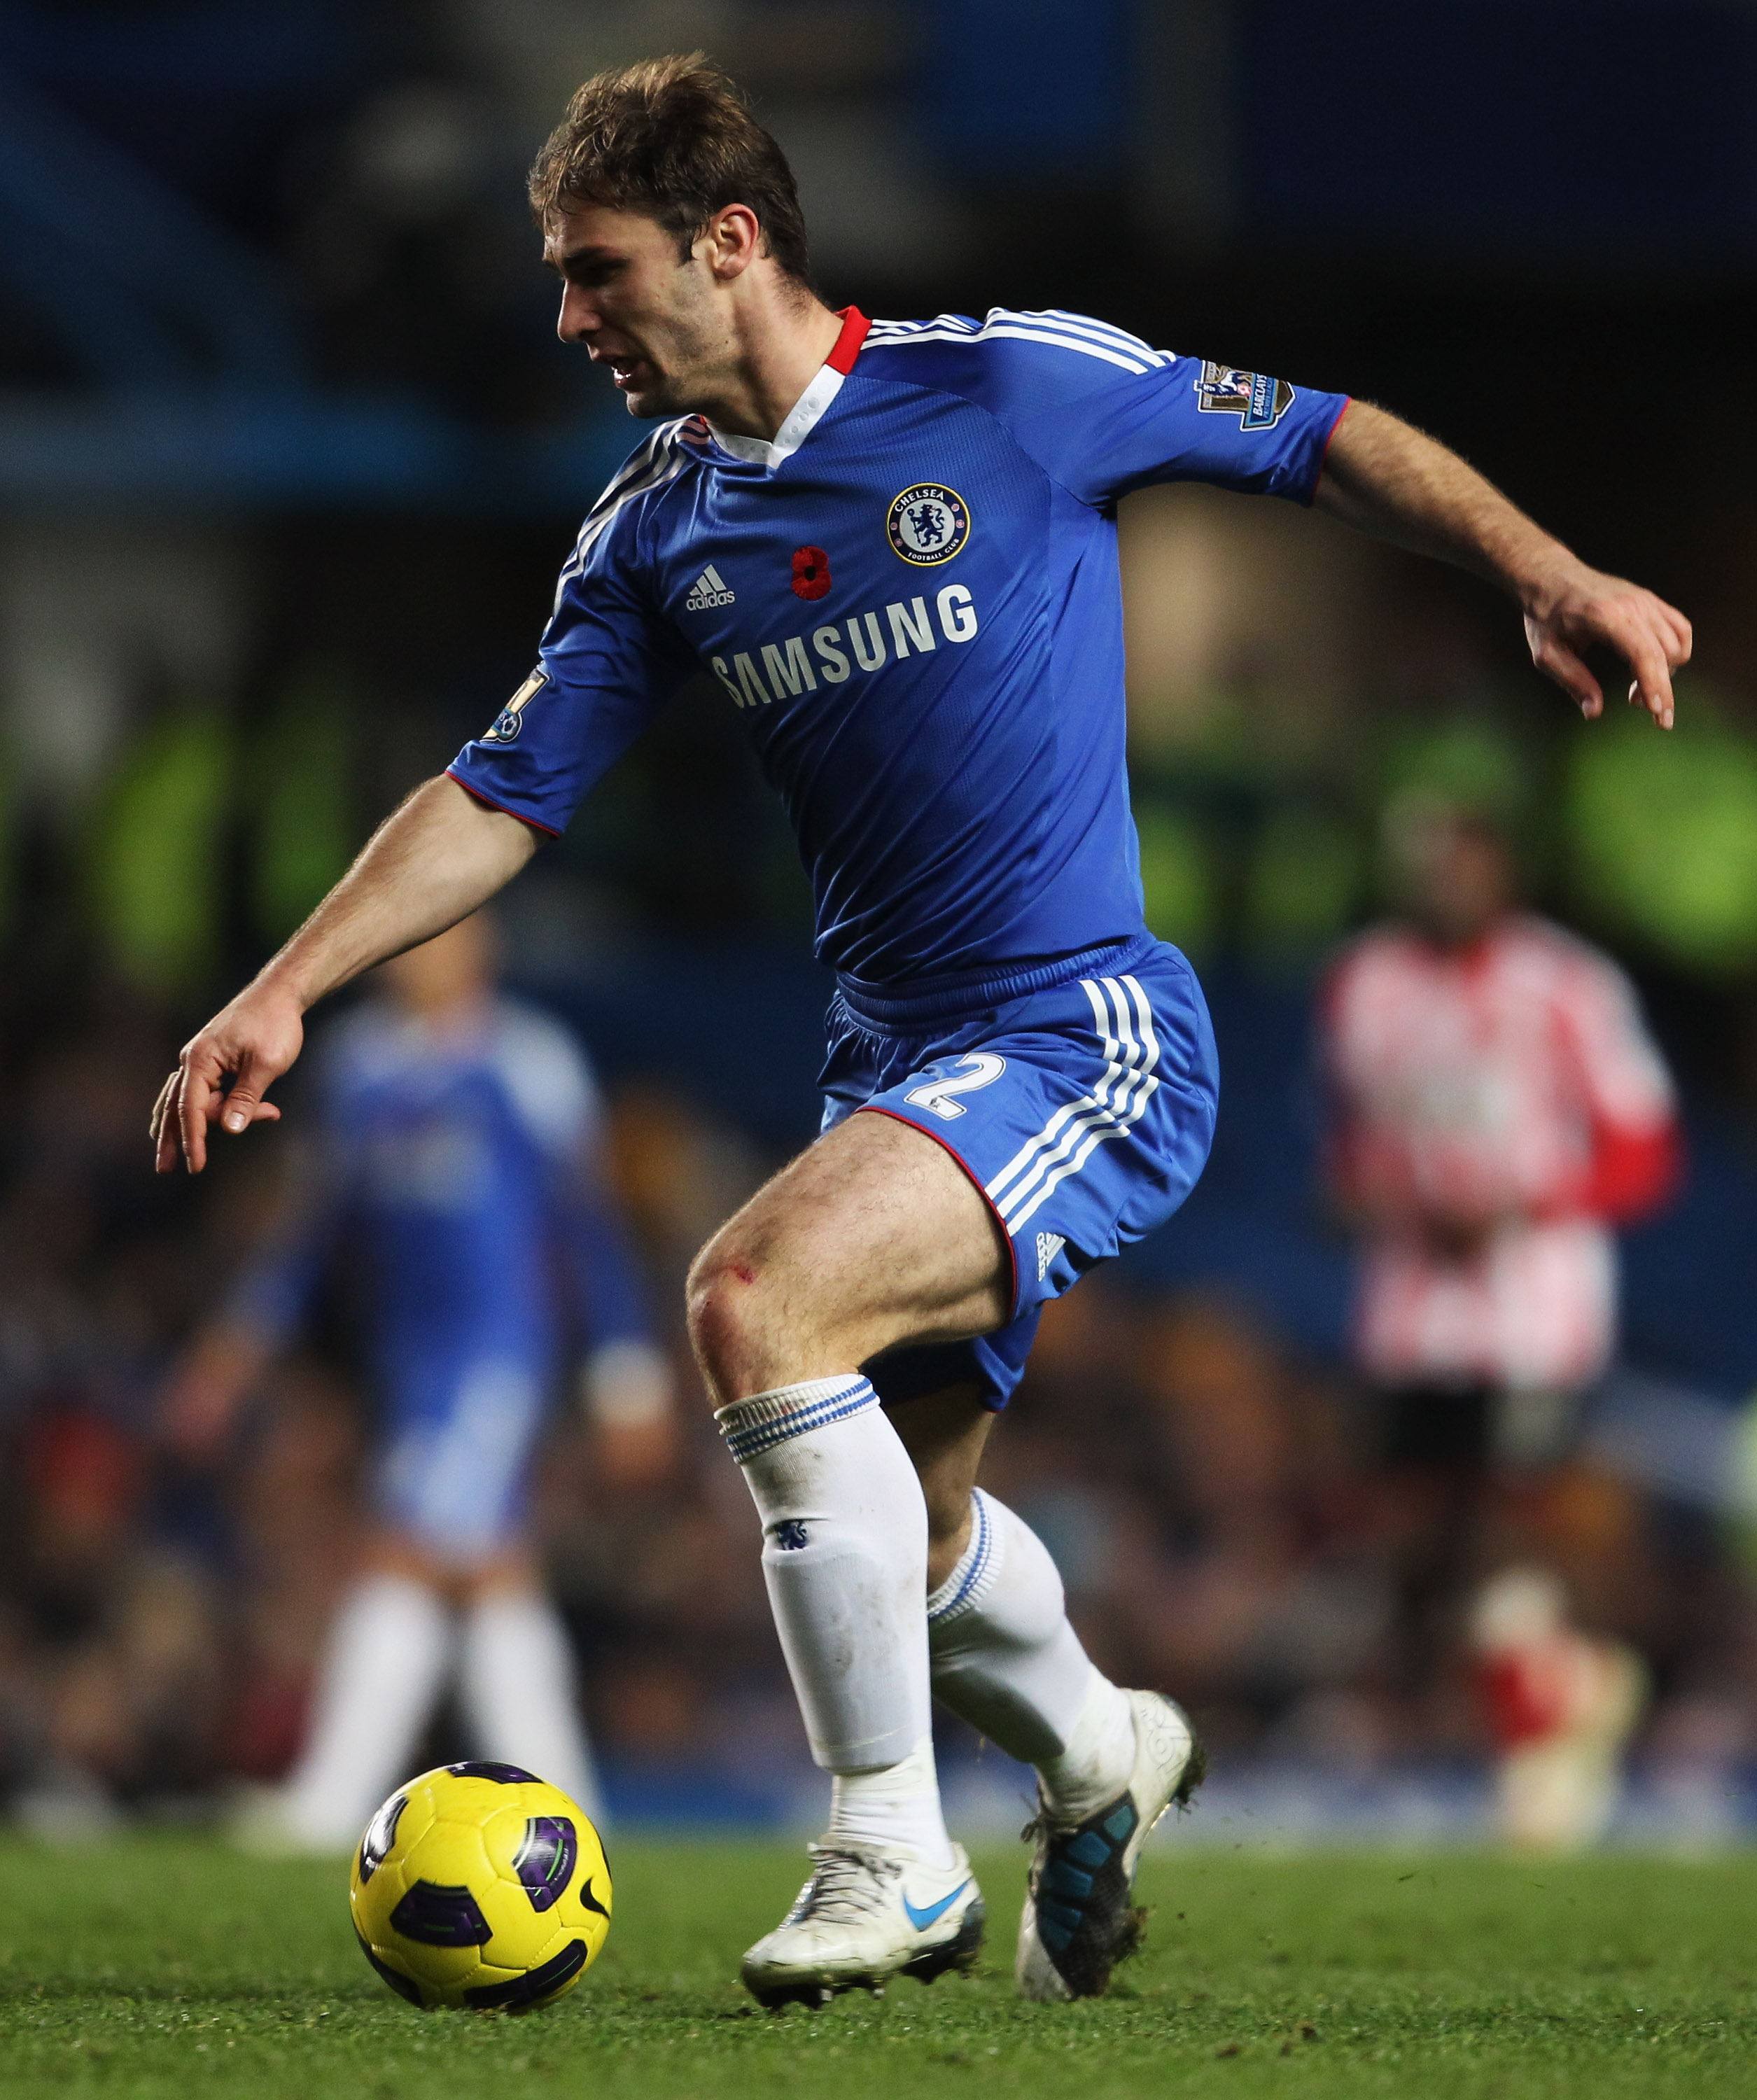 LONDON, ENGLAND - NOVEMBER 14:  Branislav Ivanovic of Chelsea in action during the Barclays Premier League match between Chelsea and Sunderland at Stamford Bridge on November 14, 2010 in London, England.  (Photo by Scott Heavey/Getty Images)